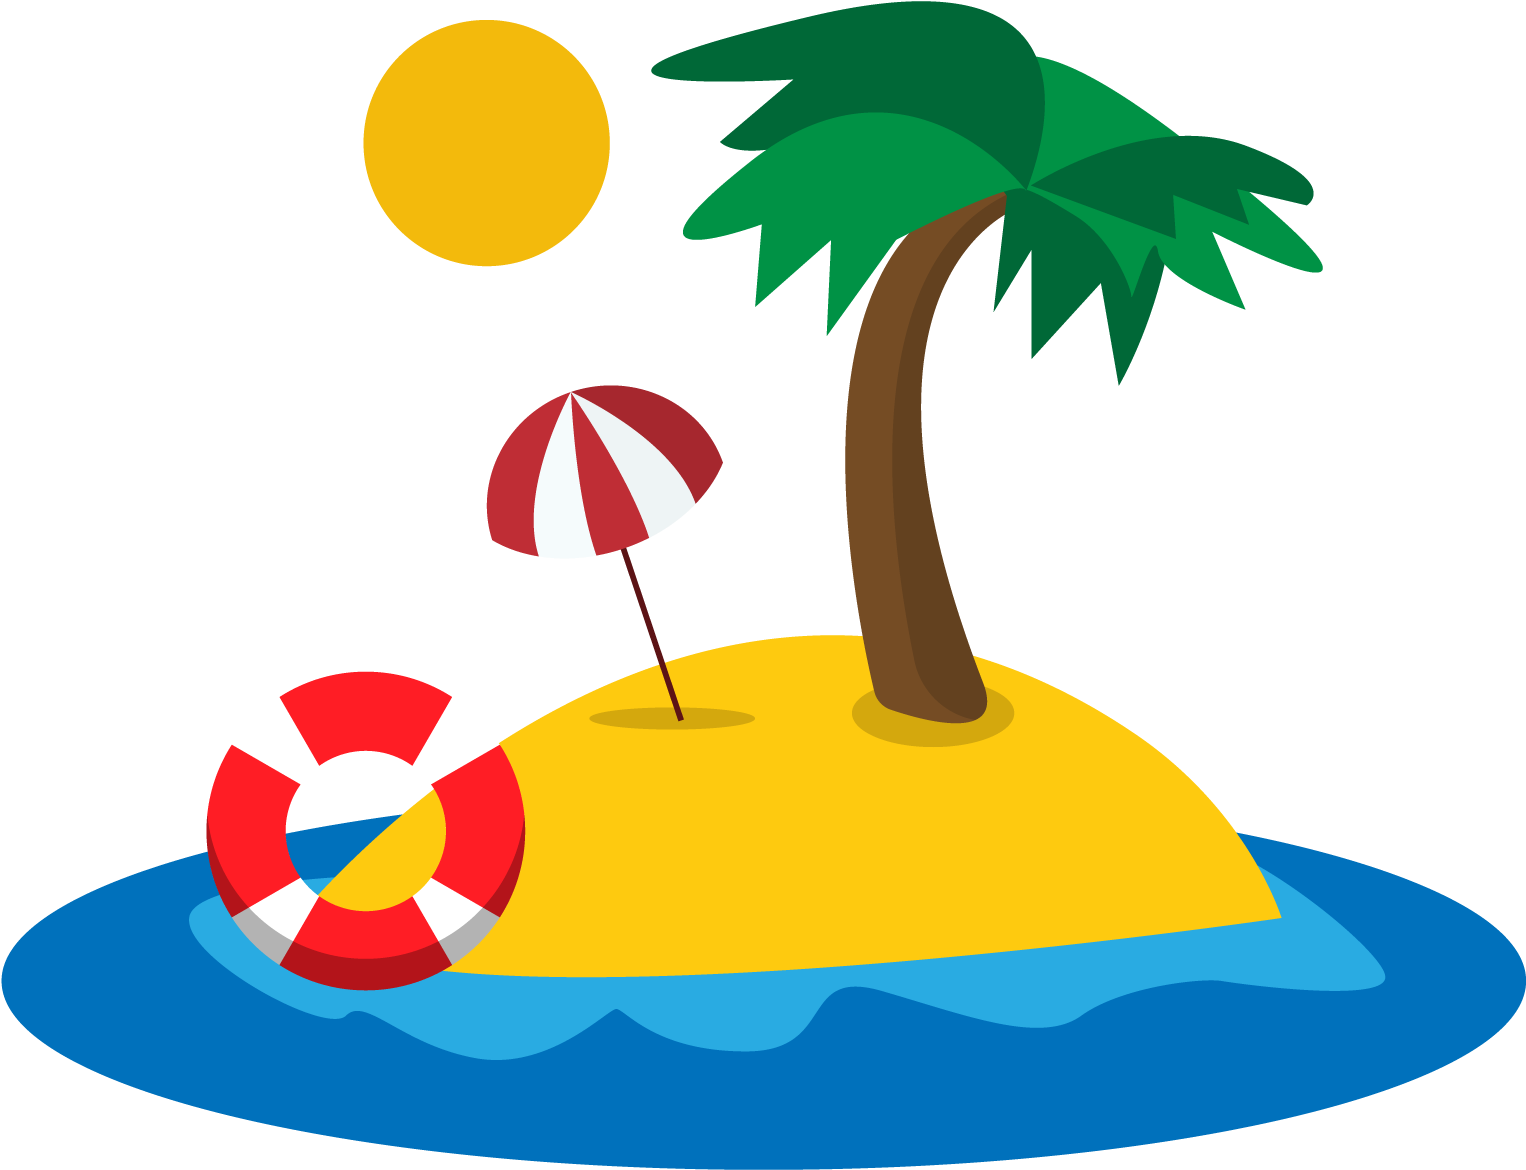 Beach island clipart png free download HD Clipart Beach Tropical Beach - Beach Island Cartoon Transparent ... png free download